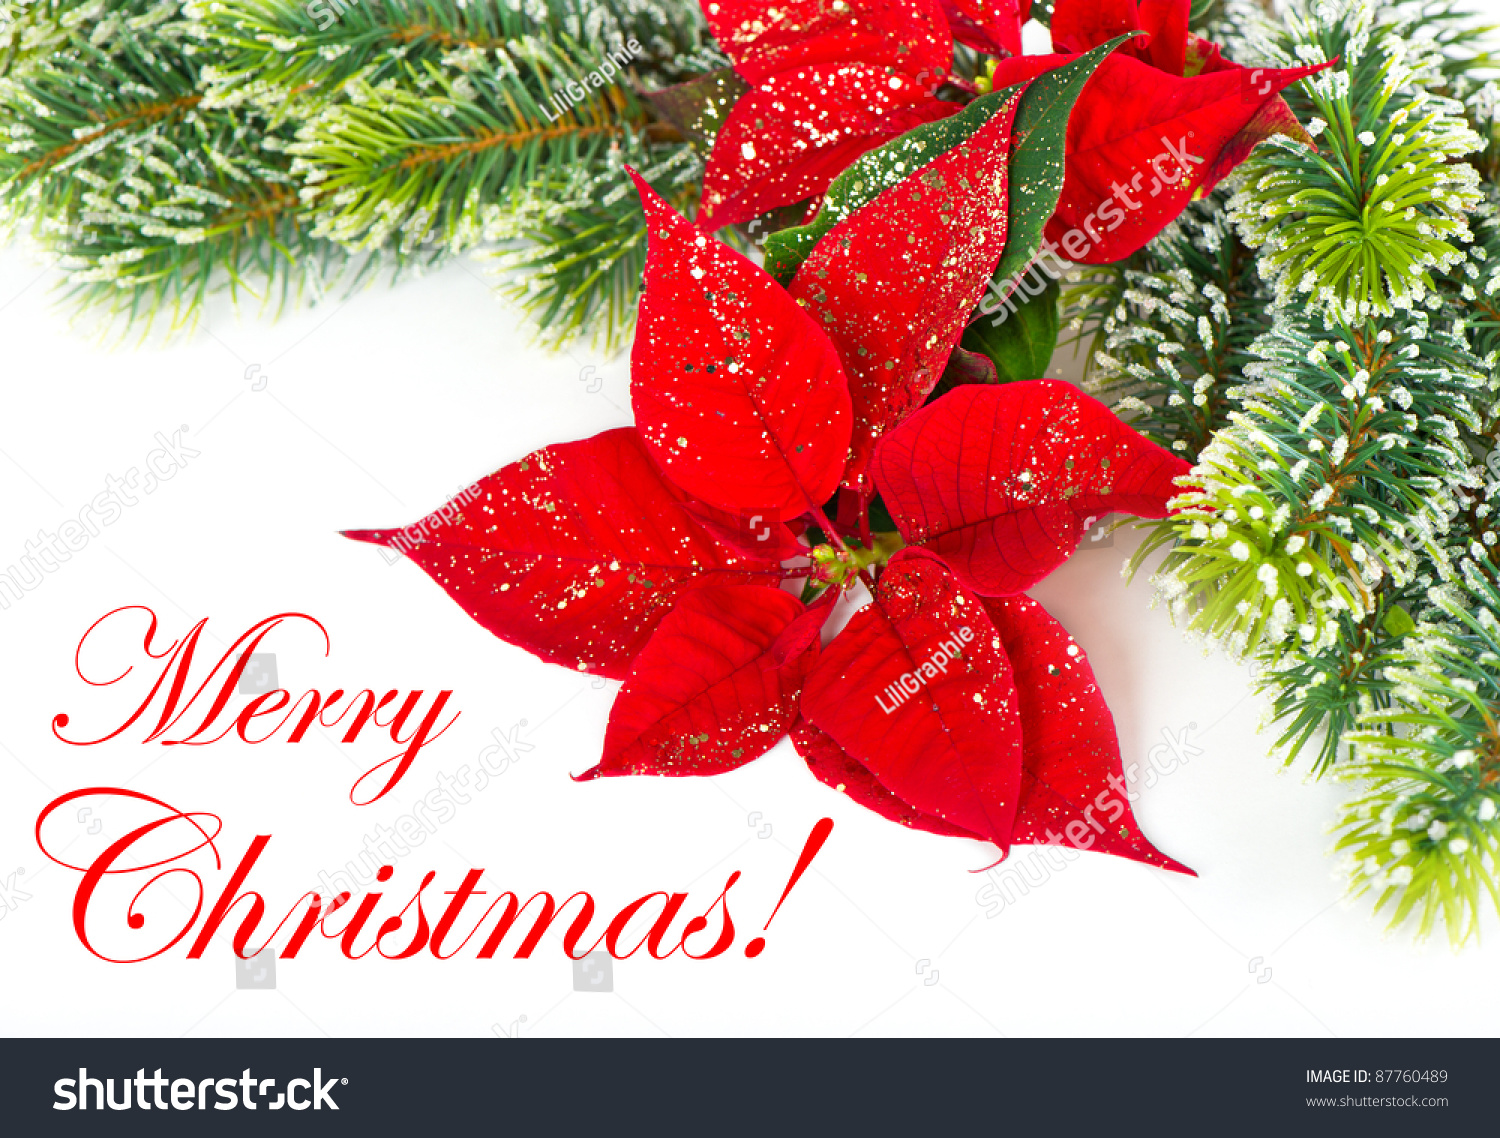 Sorry Quotes Wallpaper Download Merry Christmas Card Concept Red Poinsettia Stock Photo